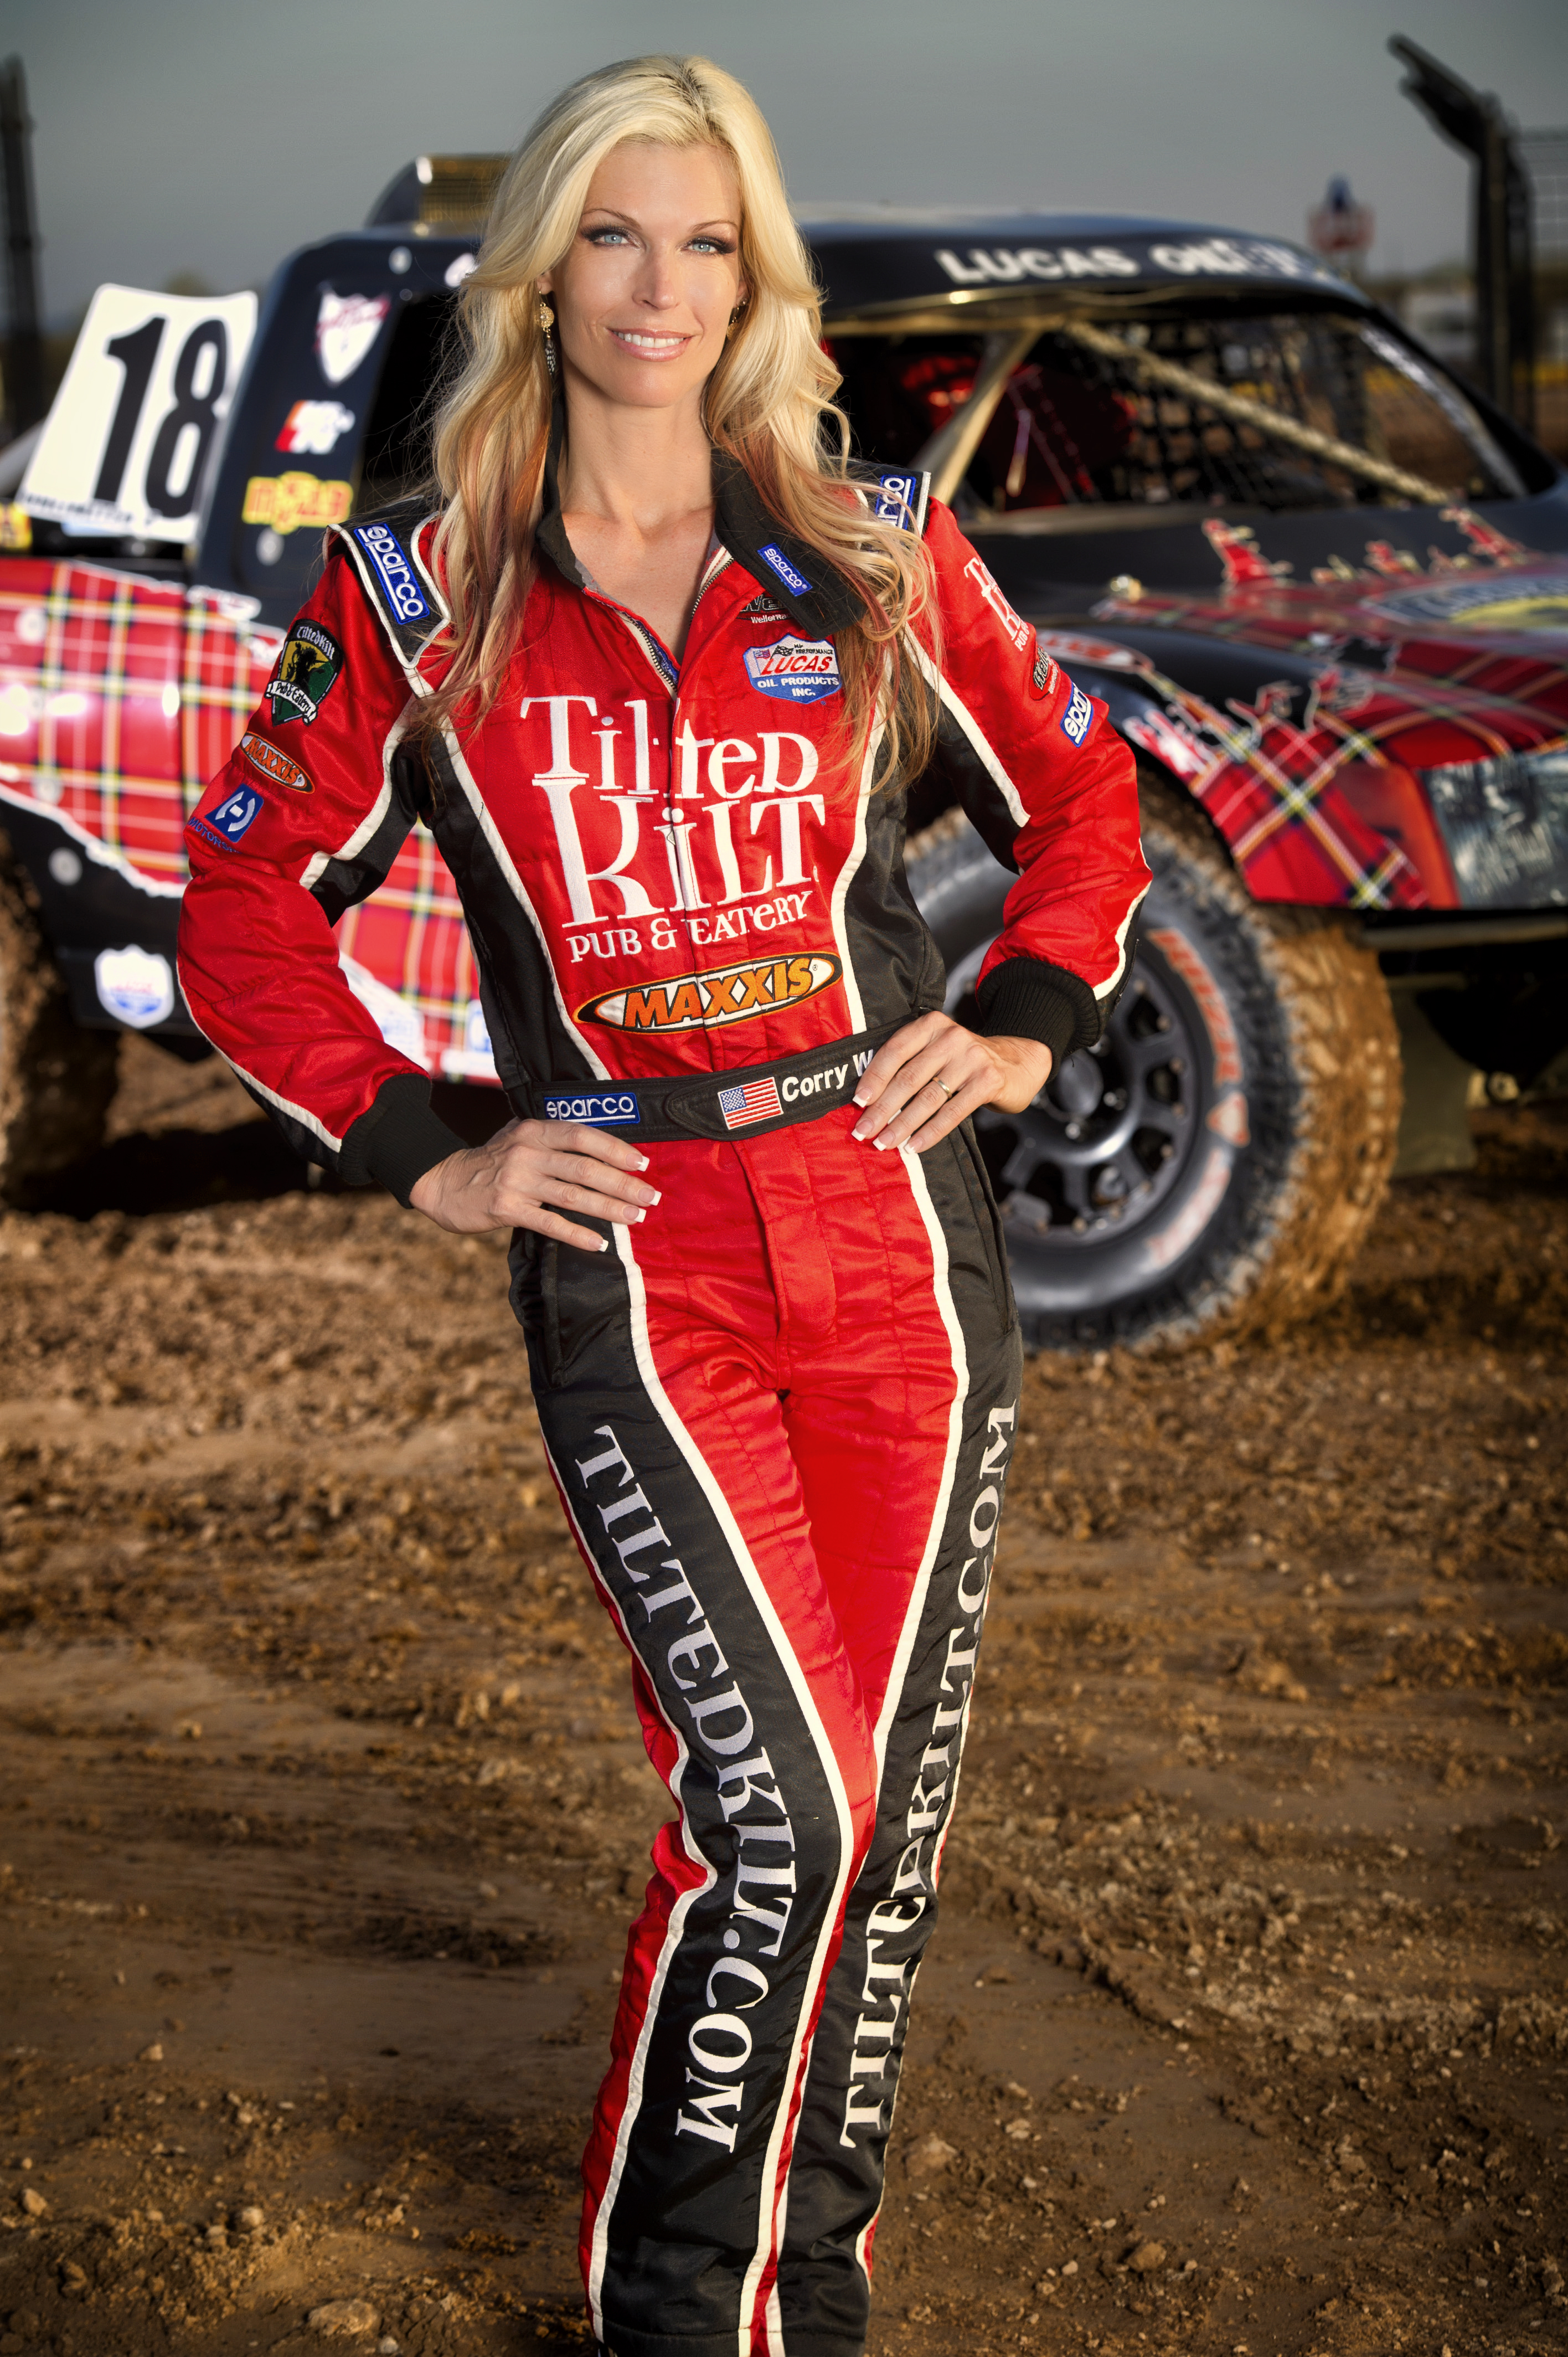 Corry Weller/Tilted Kilt Go Big at Lake Elsinore w/LOORRS ...